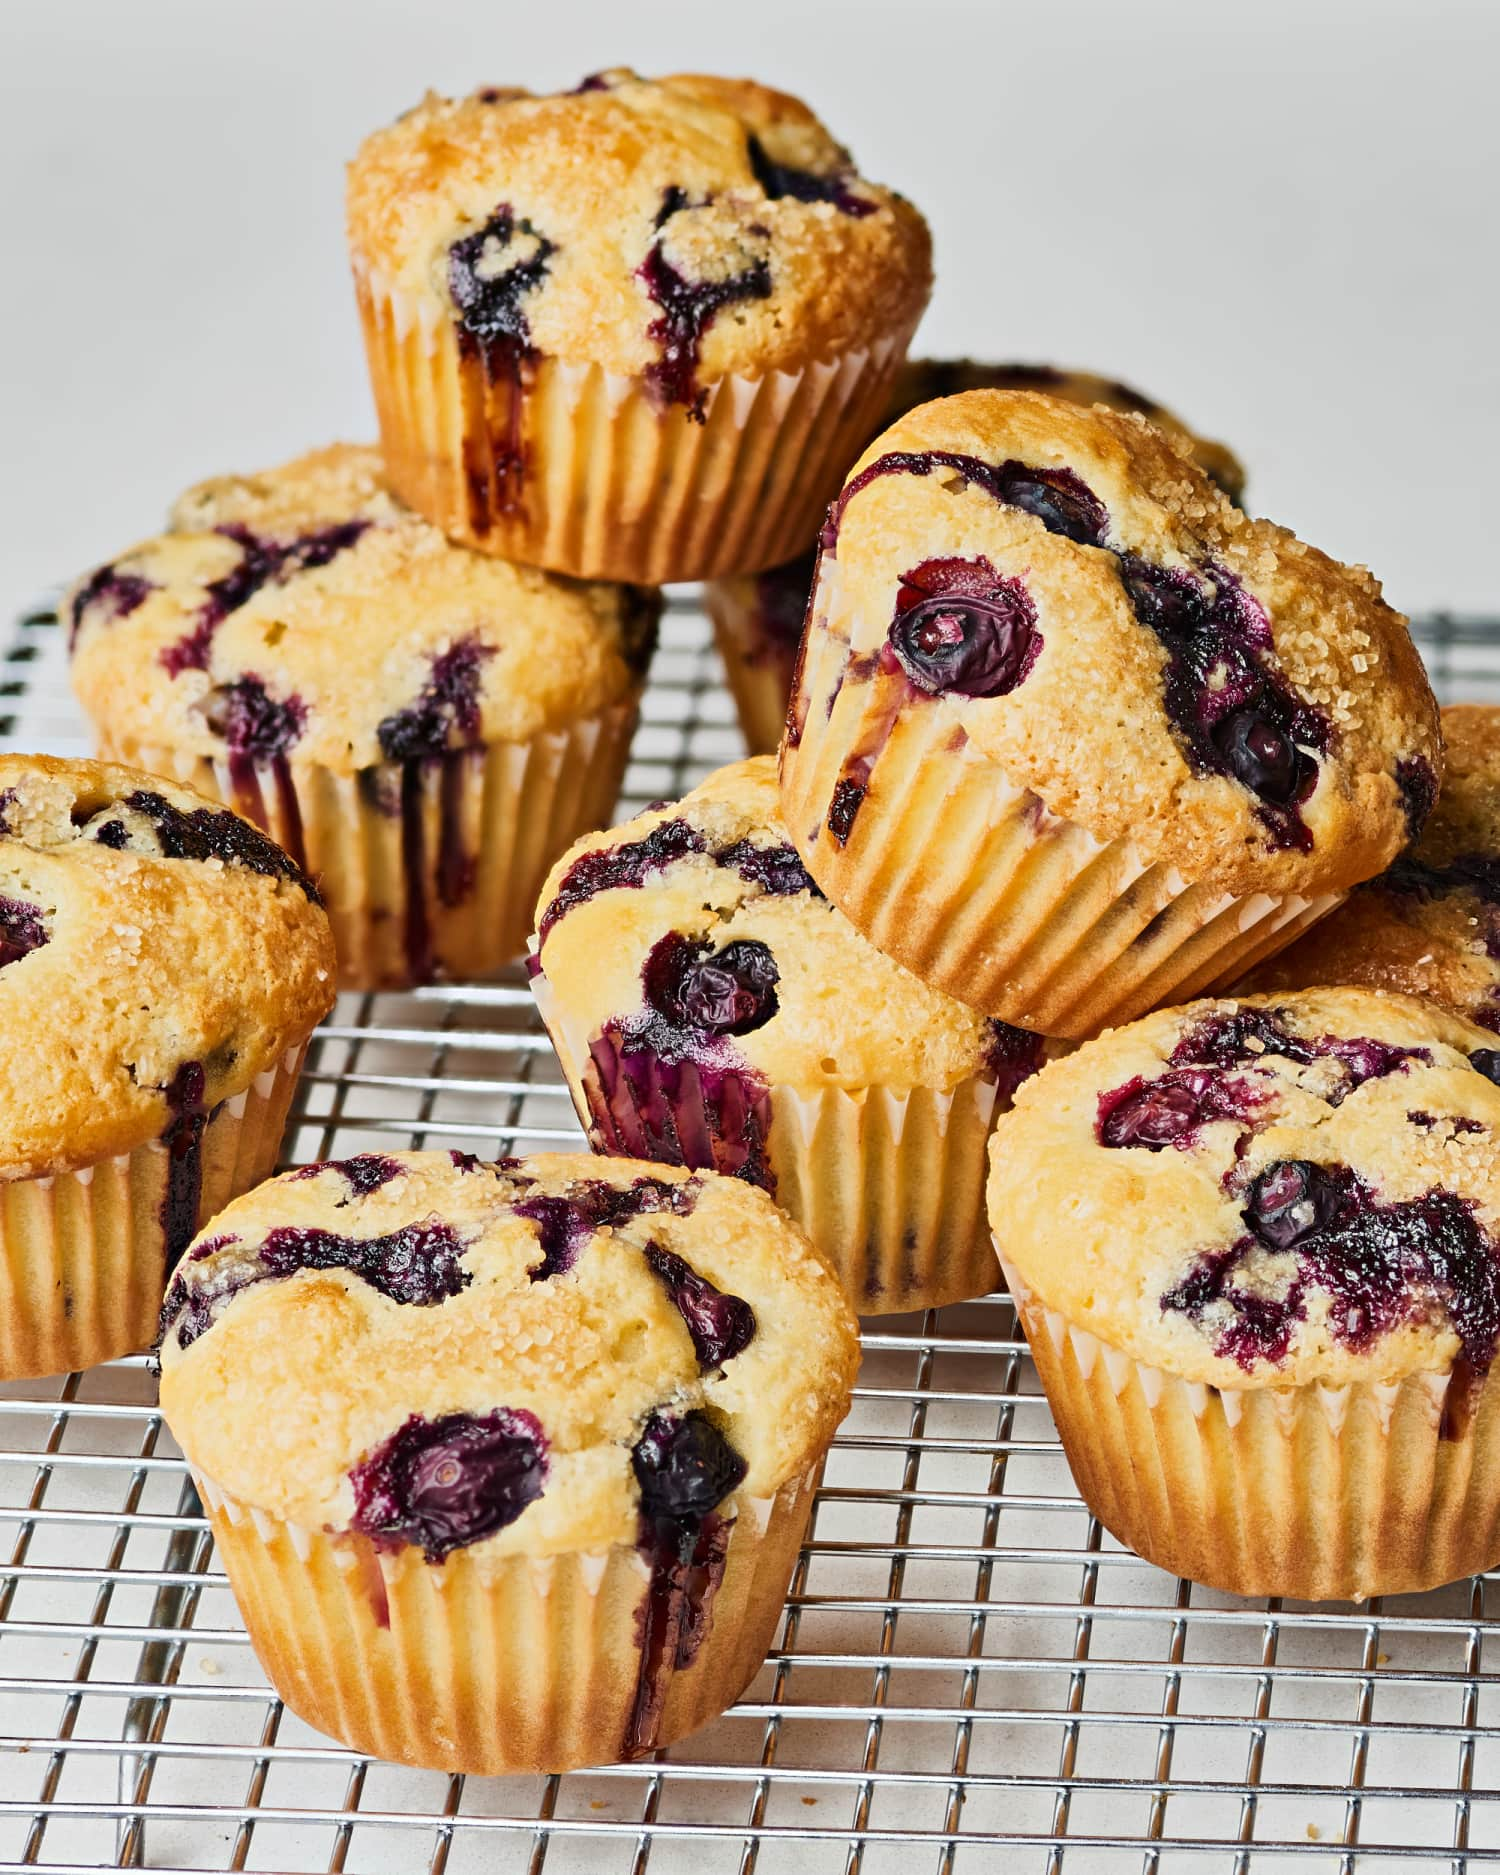 How To Make the Best, Easiest Blueberry Muffins